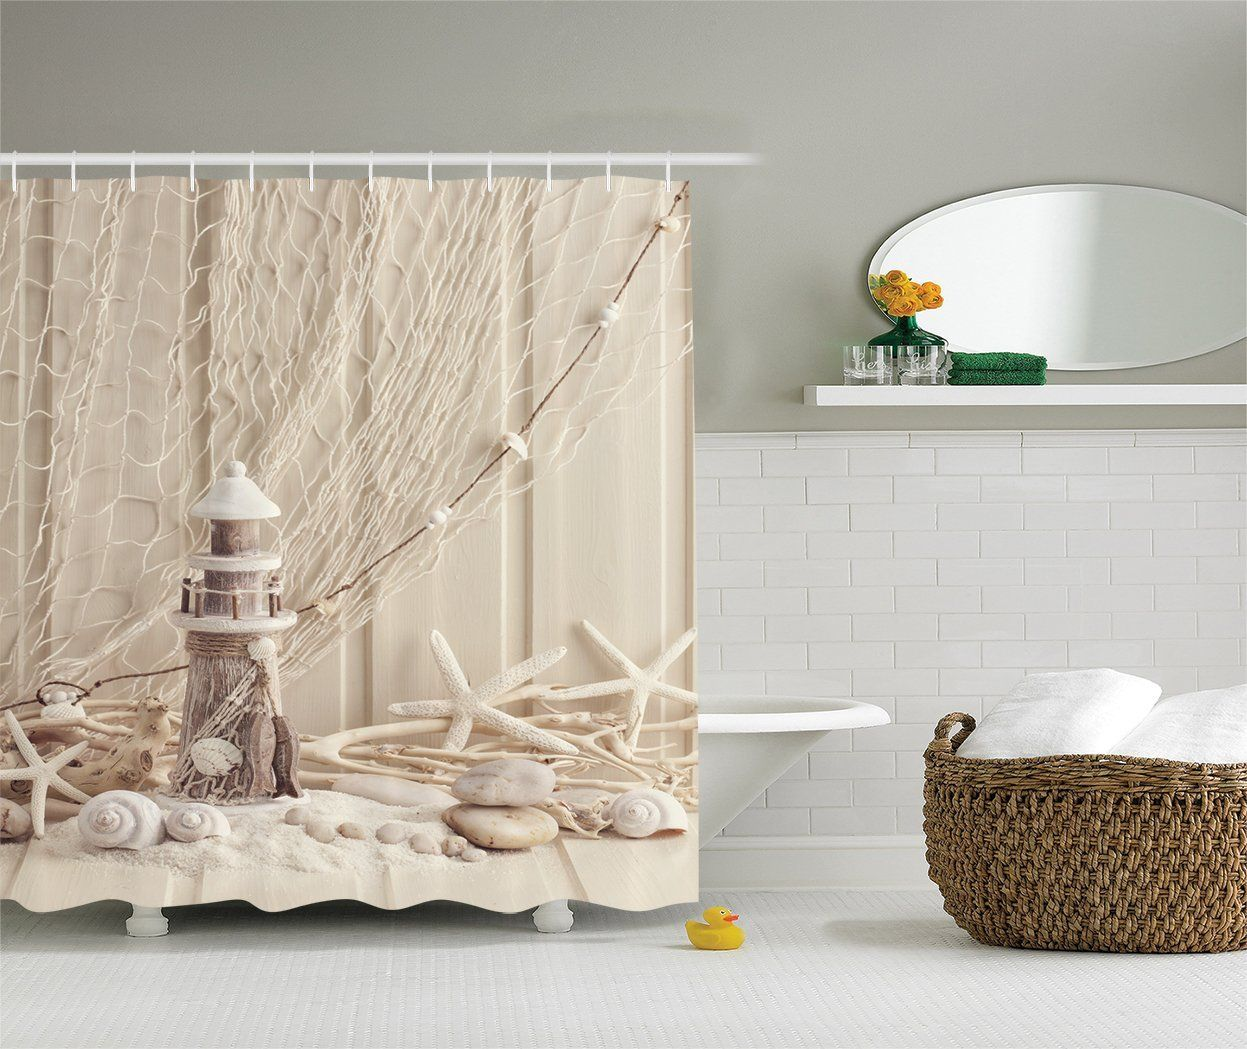 starfish beach curtain i envy this shower pin cottage idea themed love curtains home